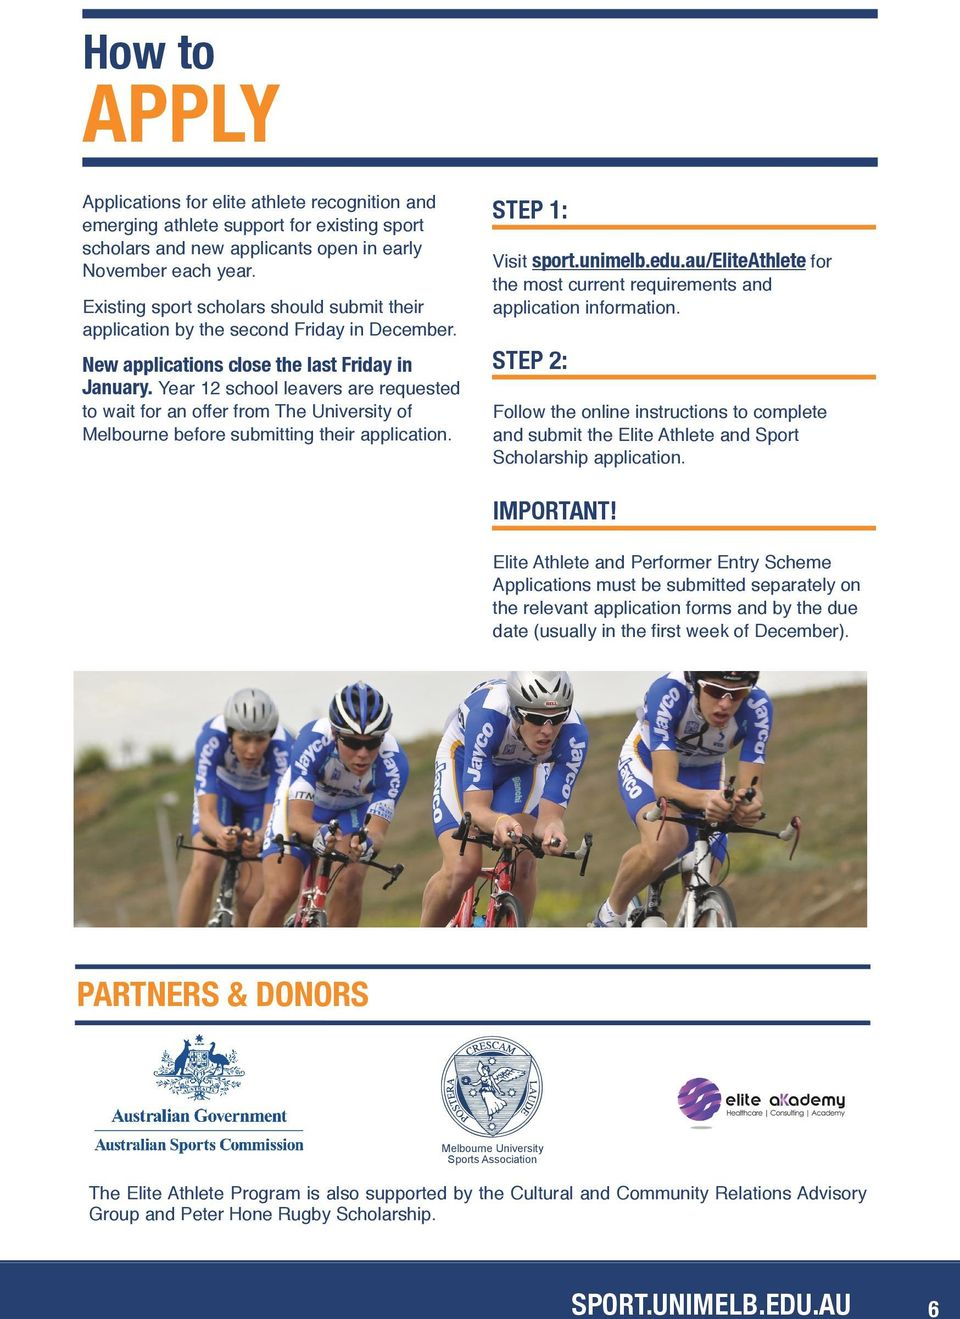 Year 12 school leavers are requested to wait for an offer from The University of Melbourne before submitting their application. STEP 1: Visit sport.unimelb.edu.